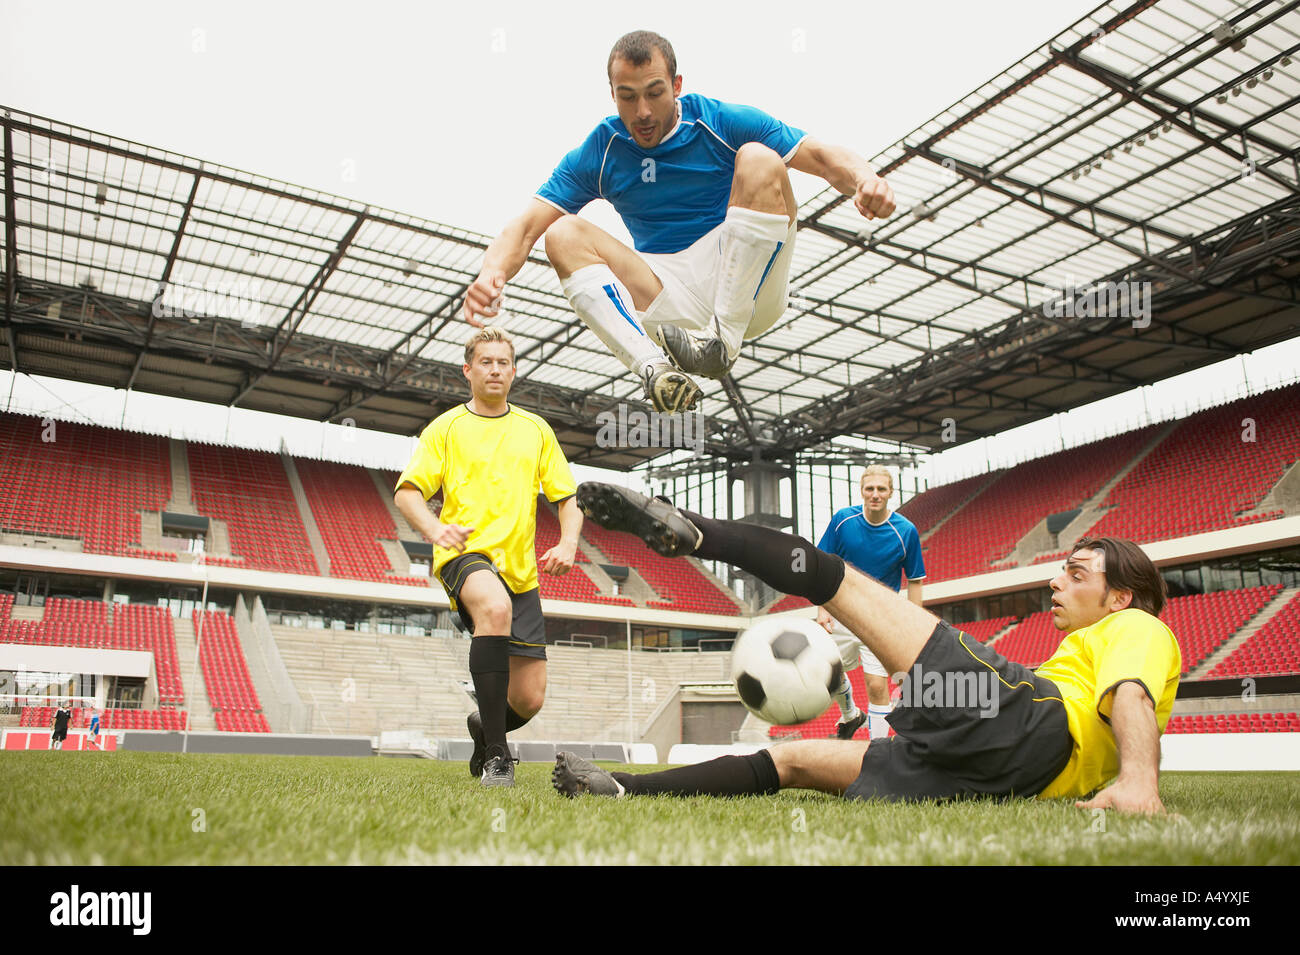 Footballers tackling - Stock Image